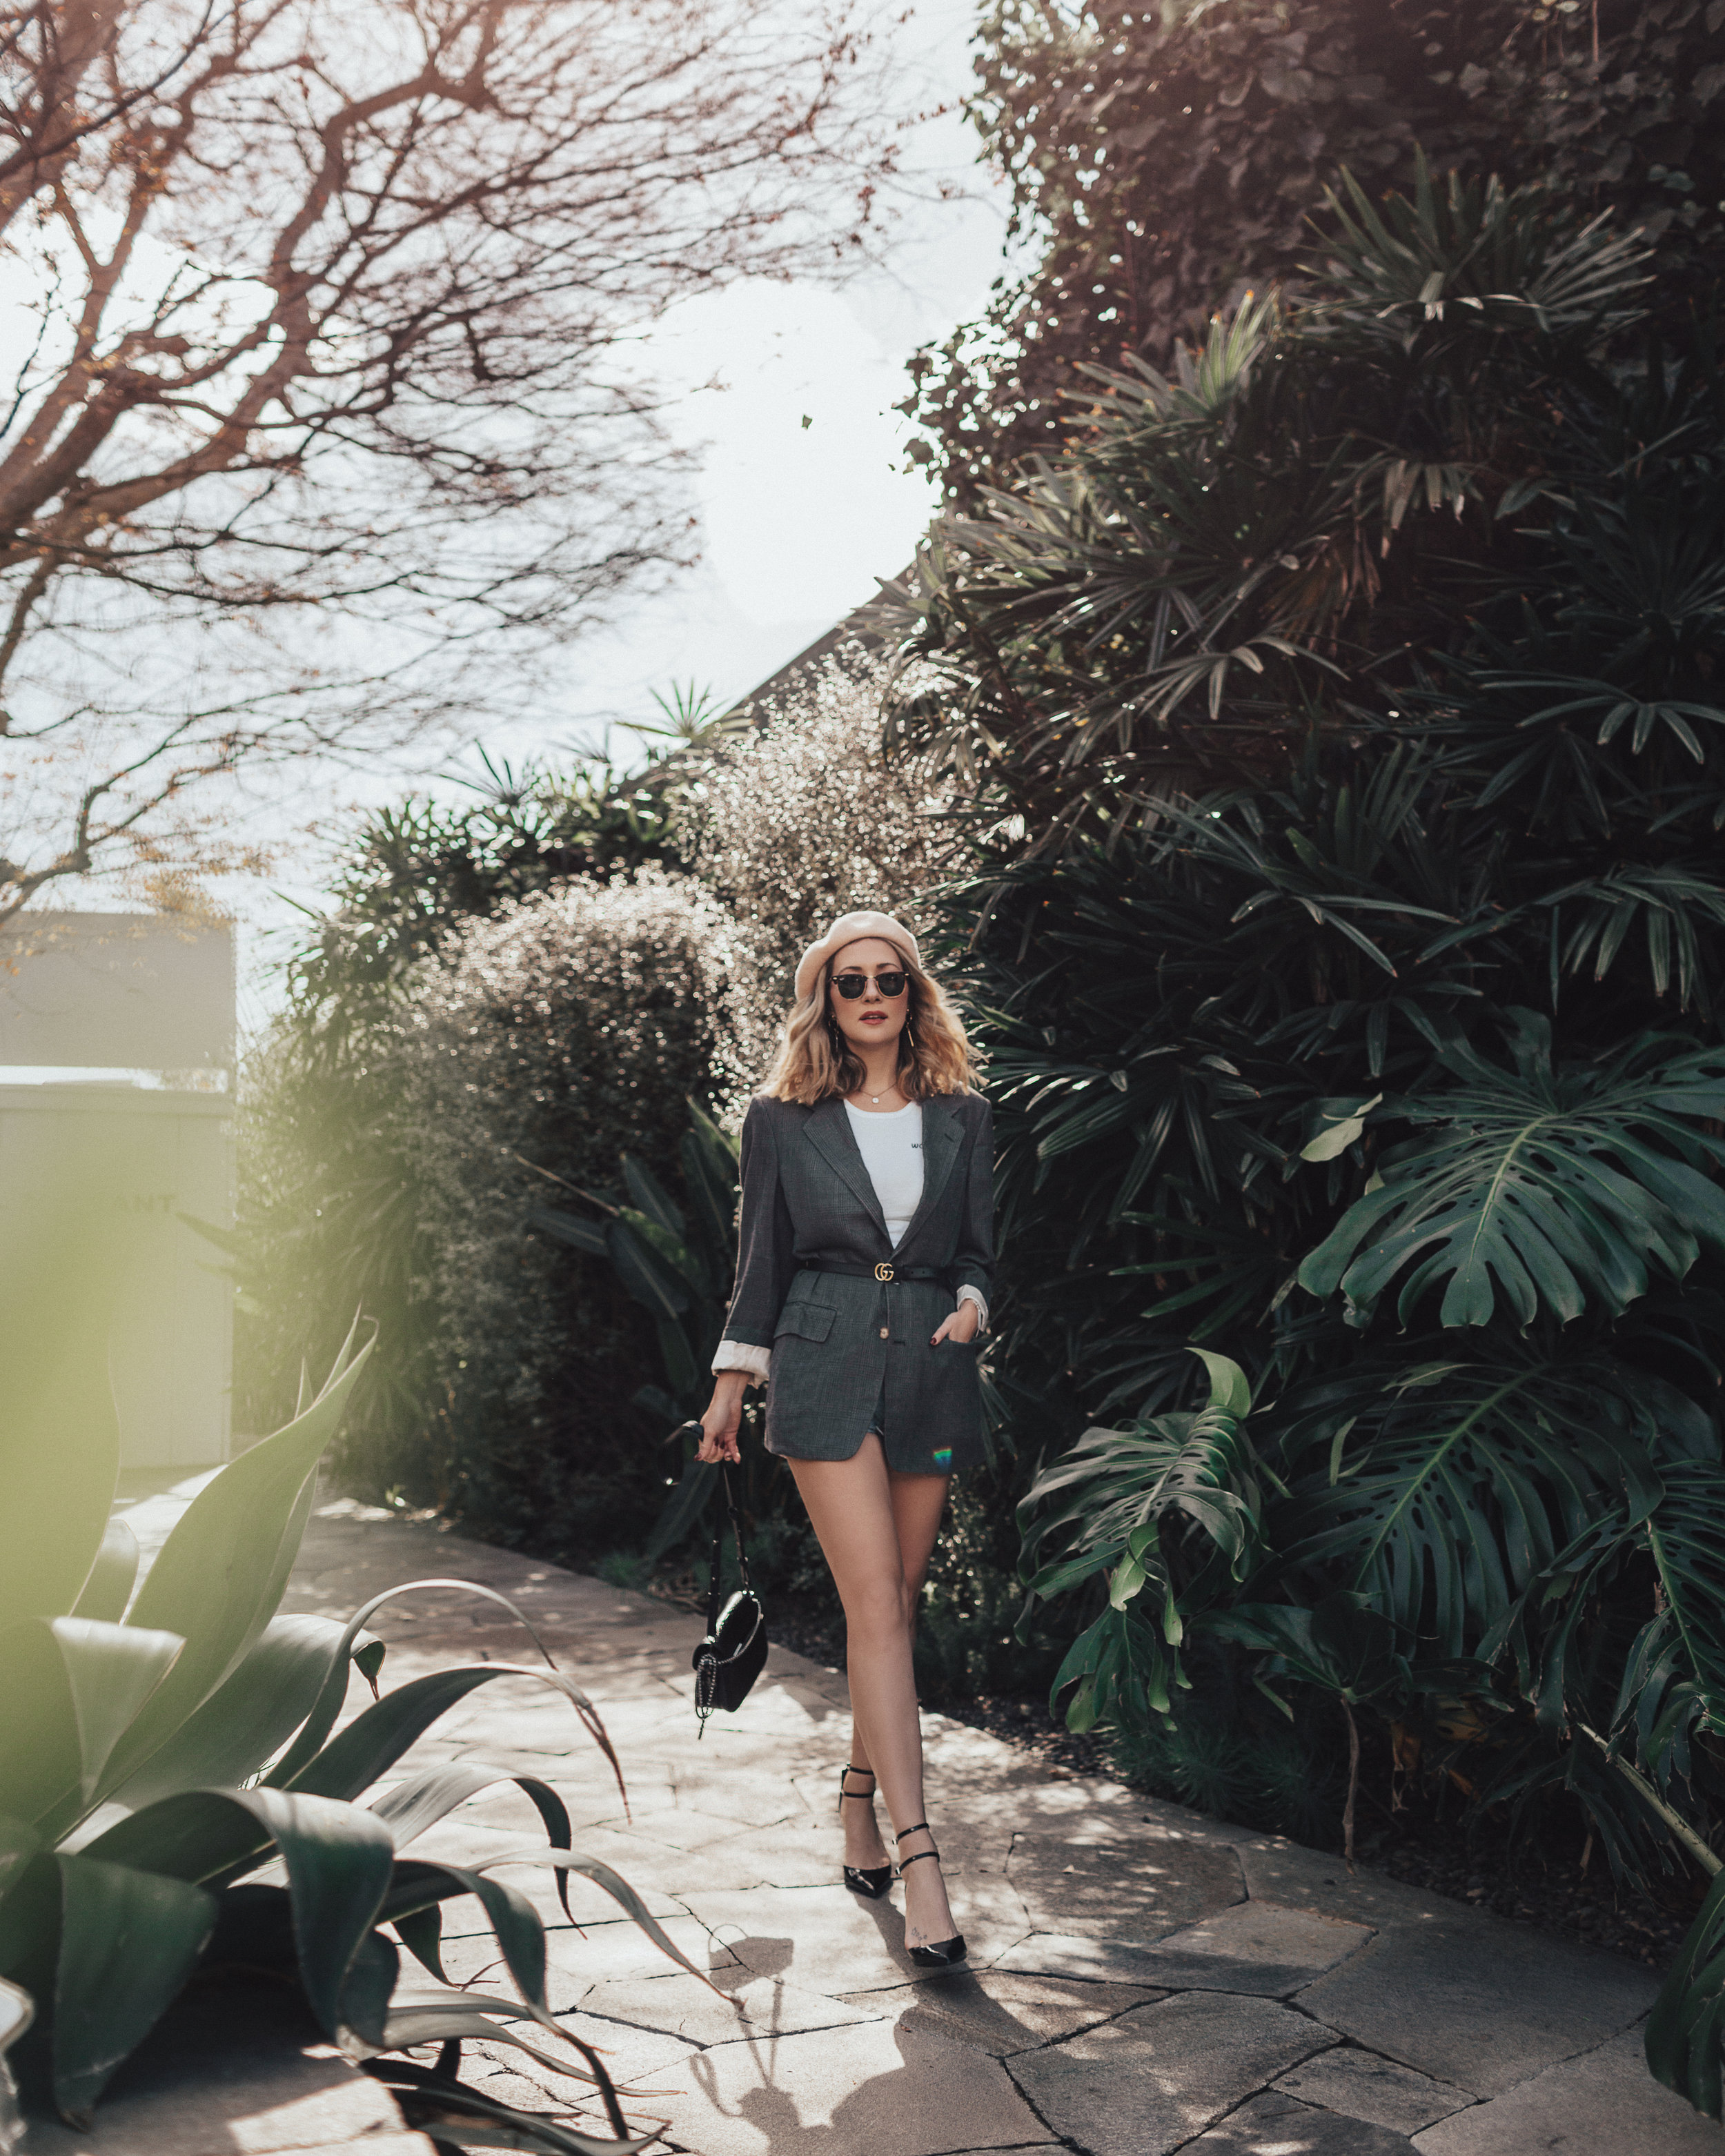 Fashion blog // Street Style // Melrose Place // How to style a blazer // The Style Sauce // #styleideas #streetstyle #blazer